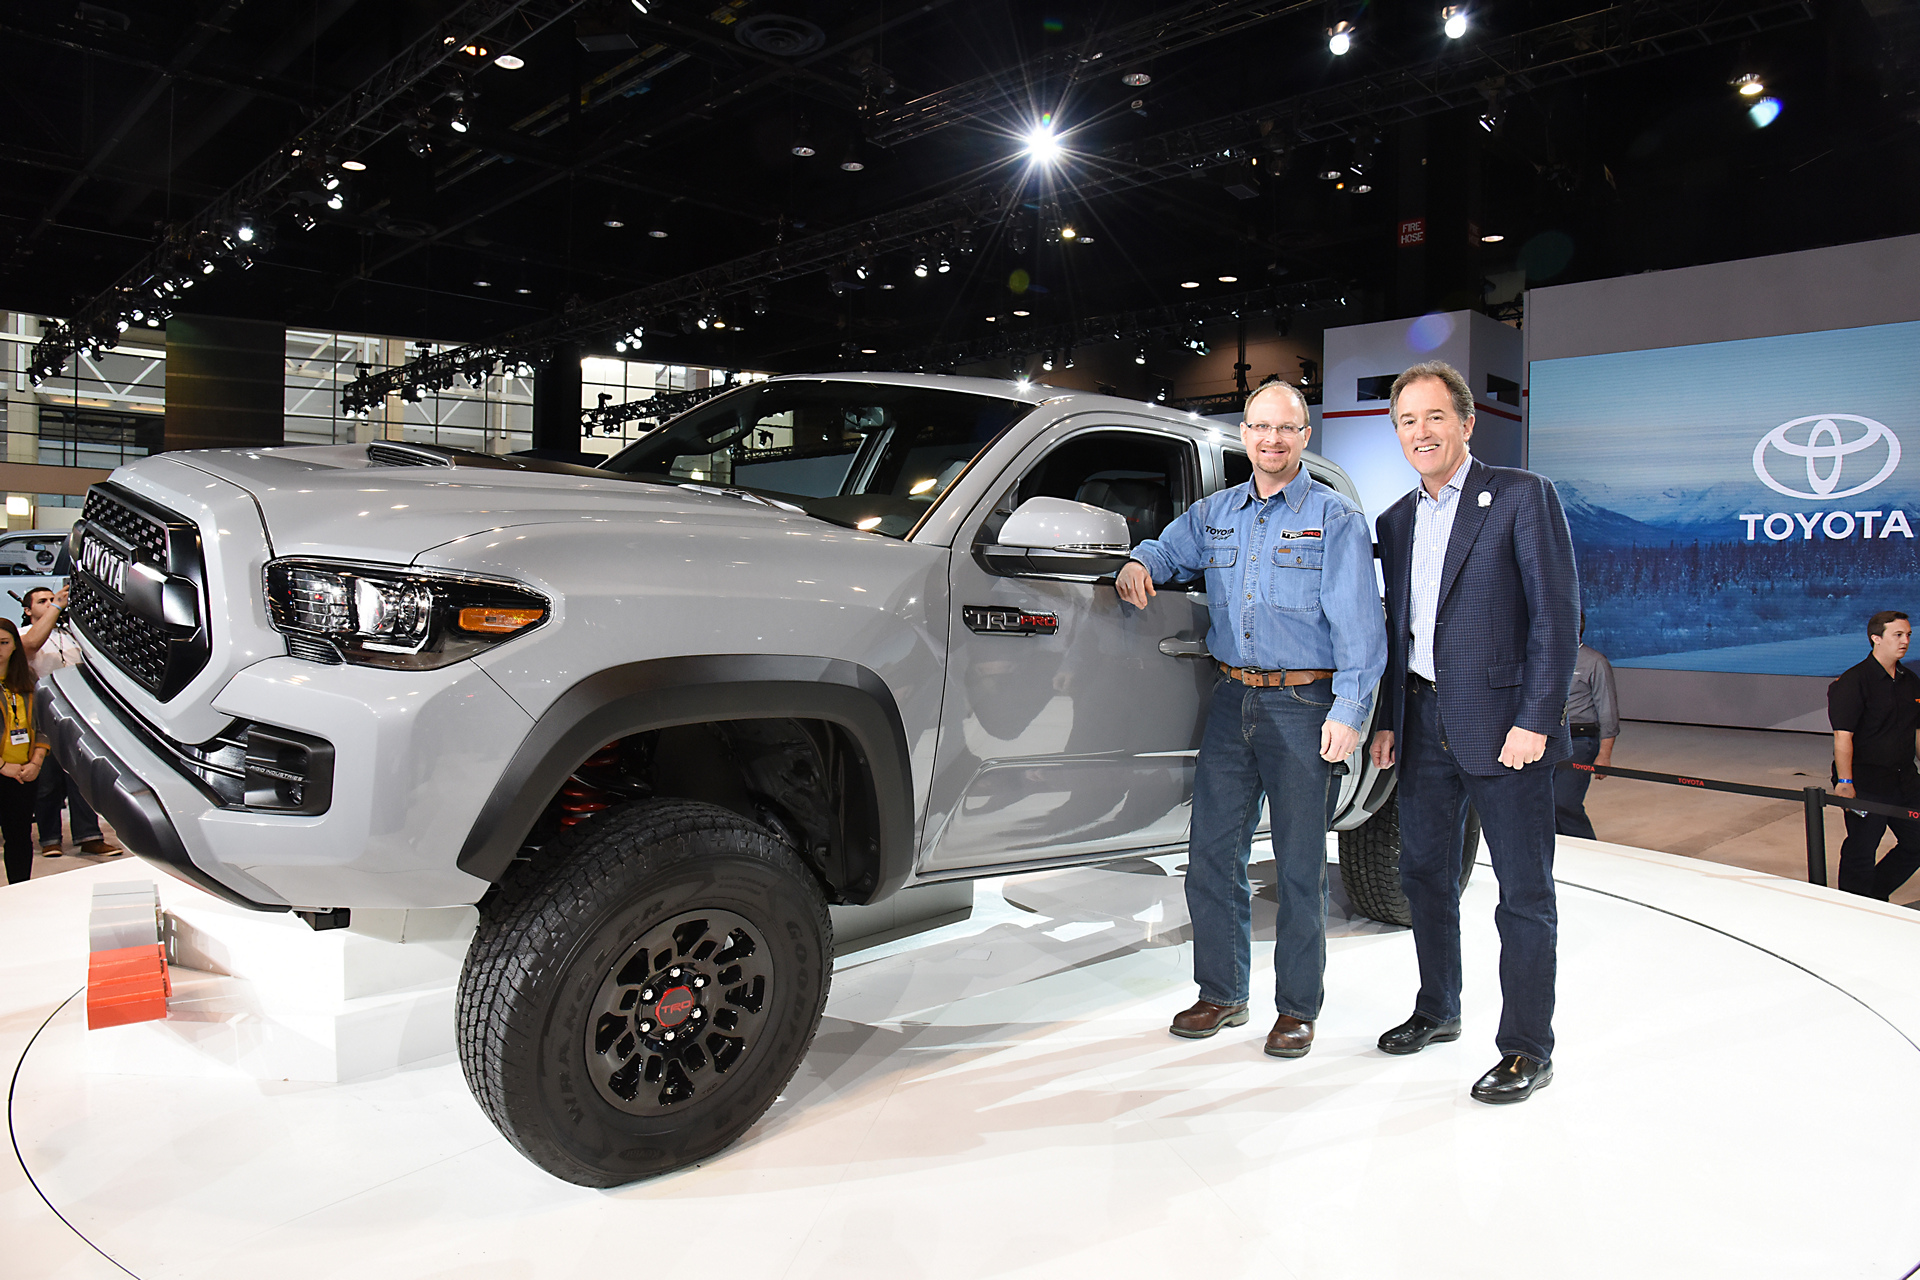 2016 Chicago Auto Show (CAS) - 2017 Tacoma TRD Pro Reveal © Toyota Motor Corporation